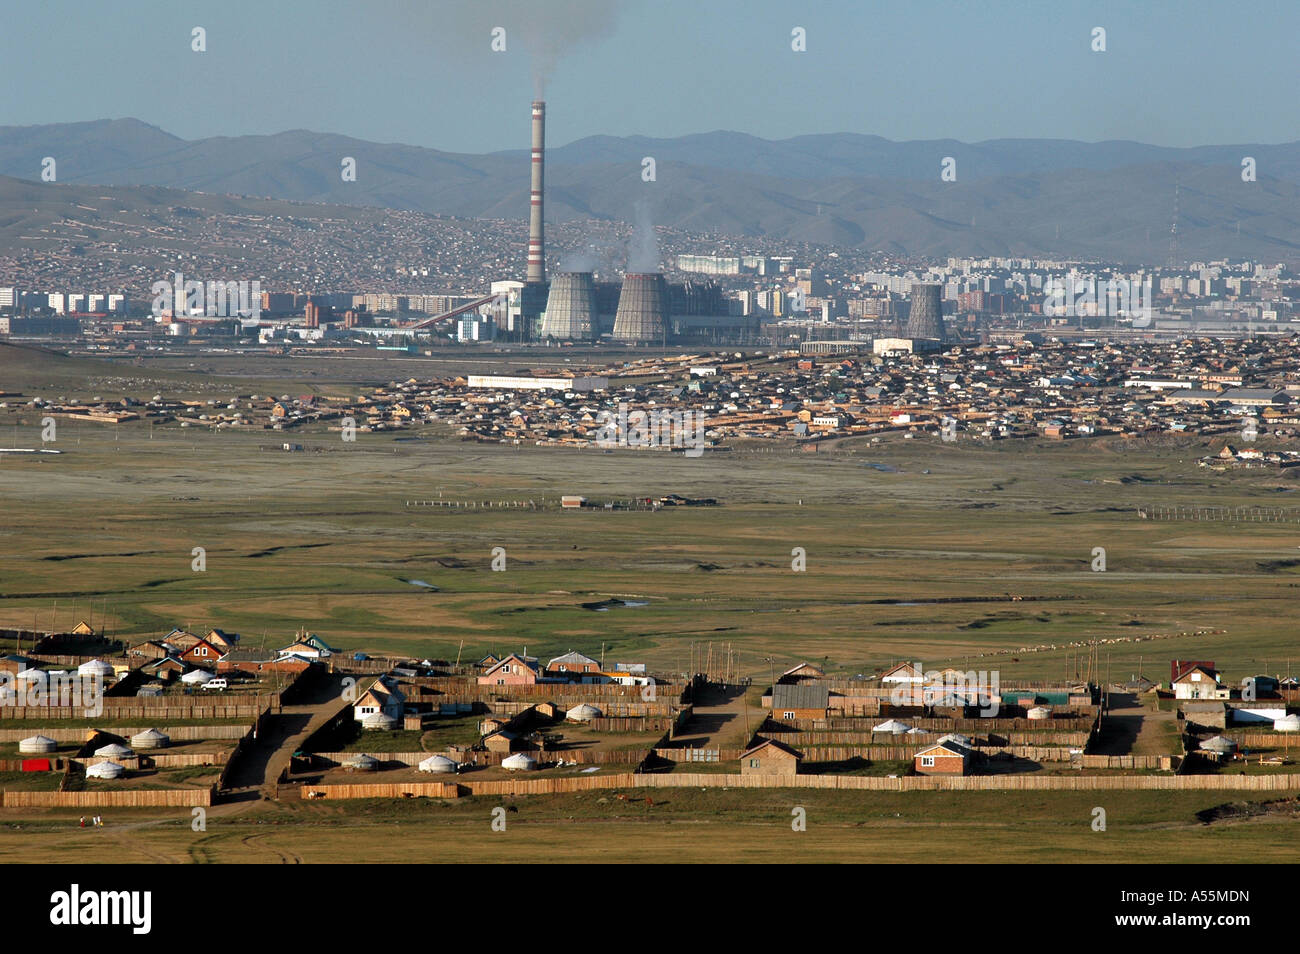 Painet is1493 mongolia landscape power station ulaan baatar country developing nation less economically developed - Stock Image